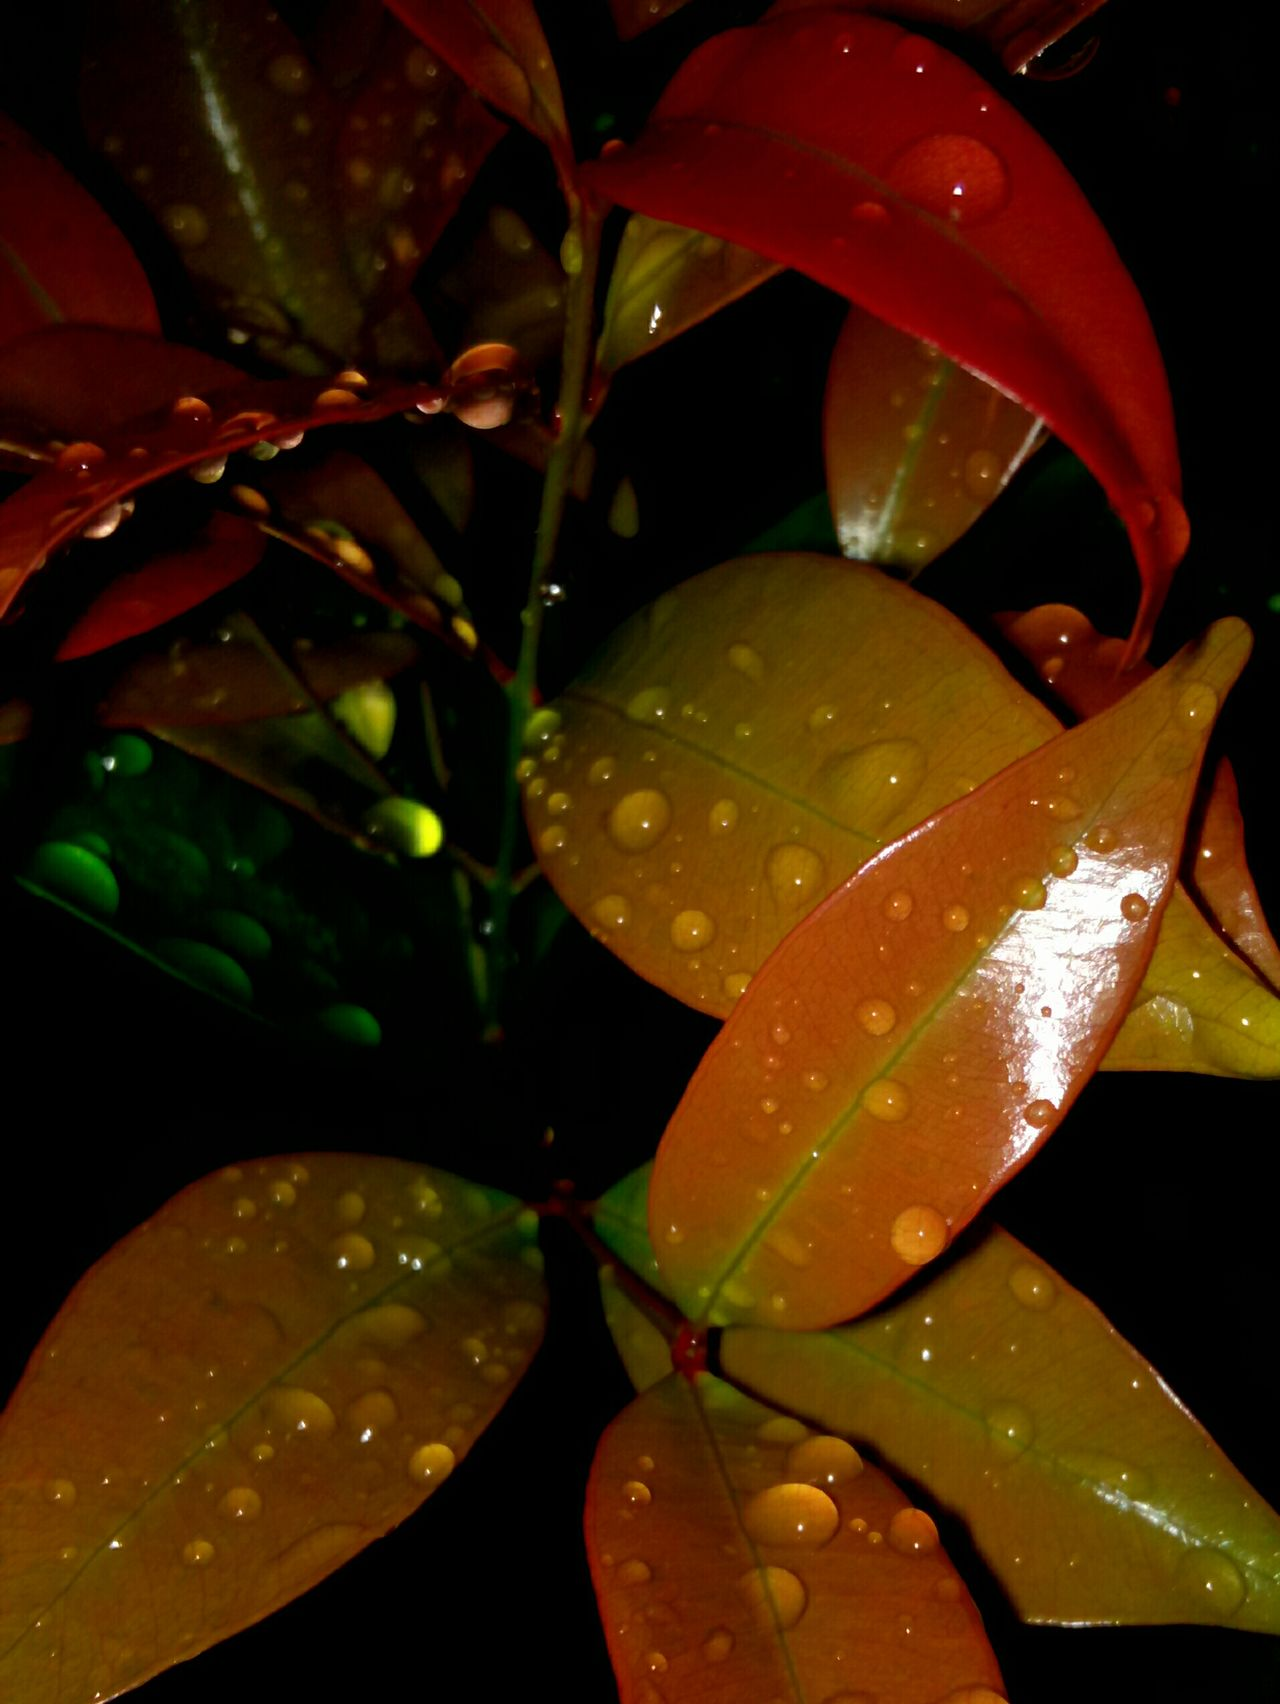 Rain Droop On Leaf Leaf Drop Water Close-up Wet Season  Growth Plant Green Color Droplet Nature Day Outdoors Dew Beauty In Nature Leaves Freshness Fragility Focus On Foreground Tranquility Nature In The Night Huawei Shots Huawei Y5